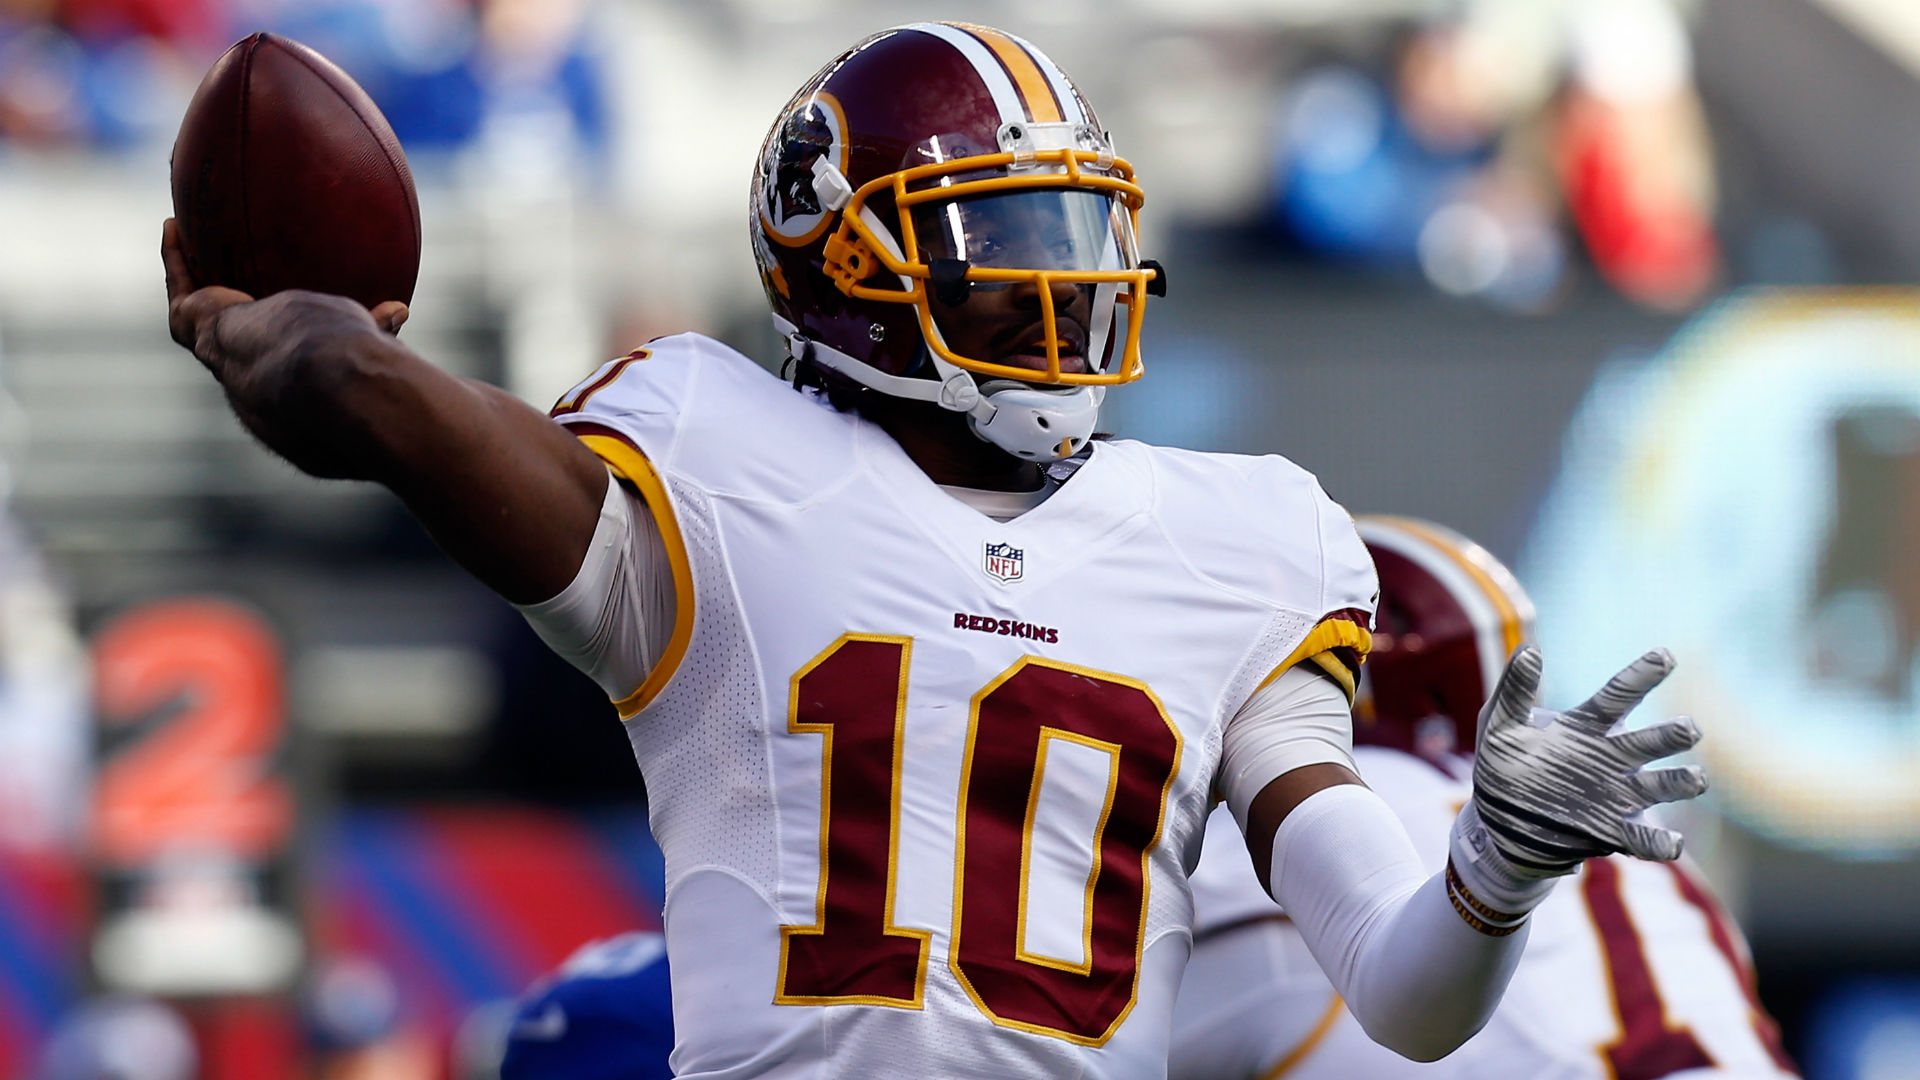 Eagles vs. Redskins betting preview and pick - Philly facing must-win situation